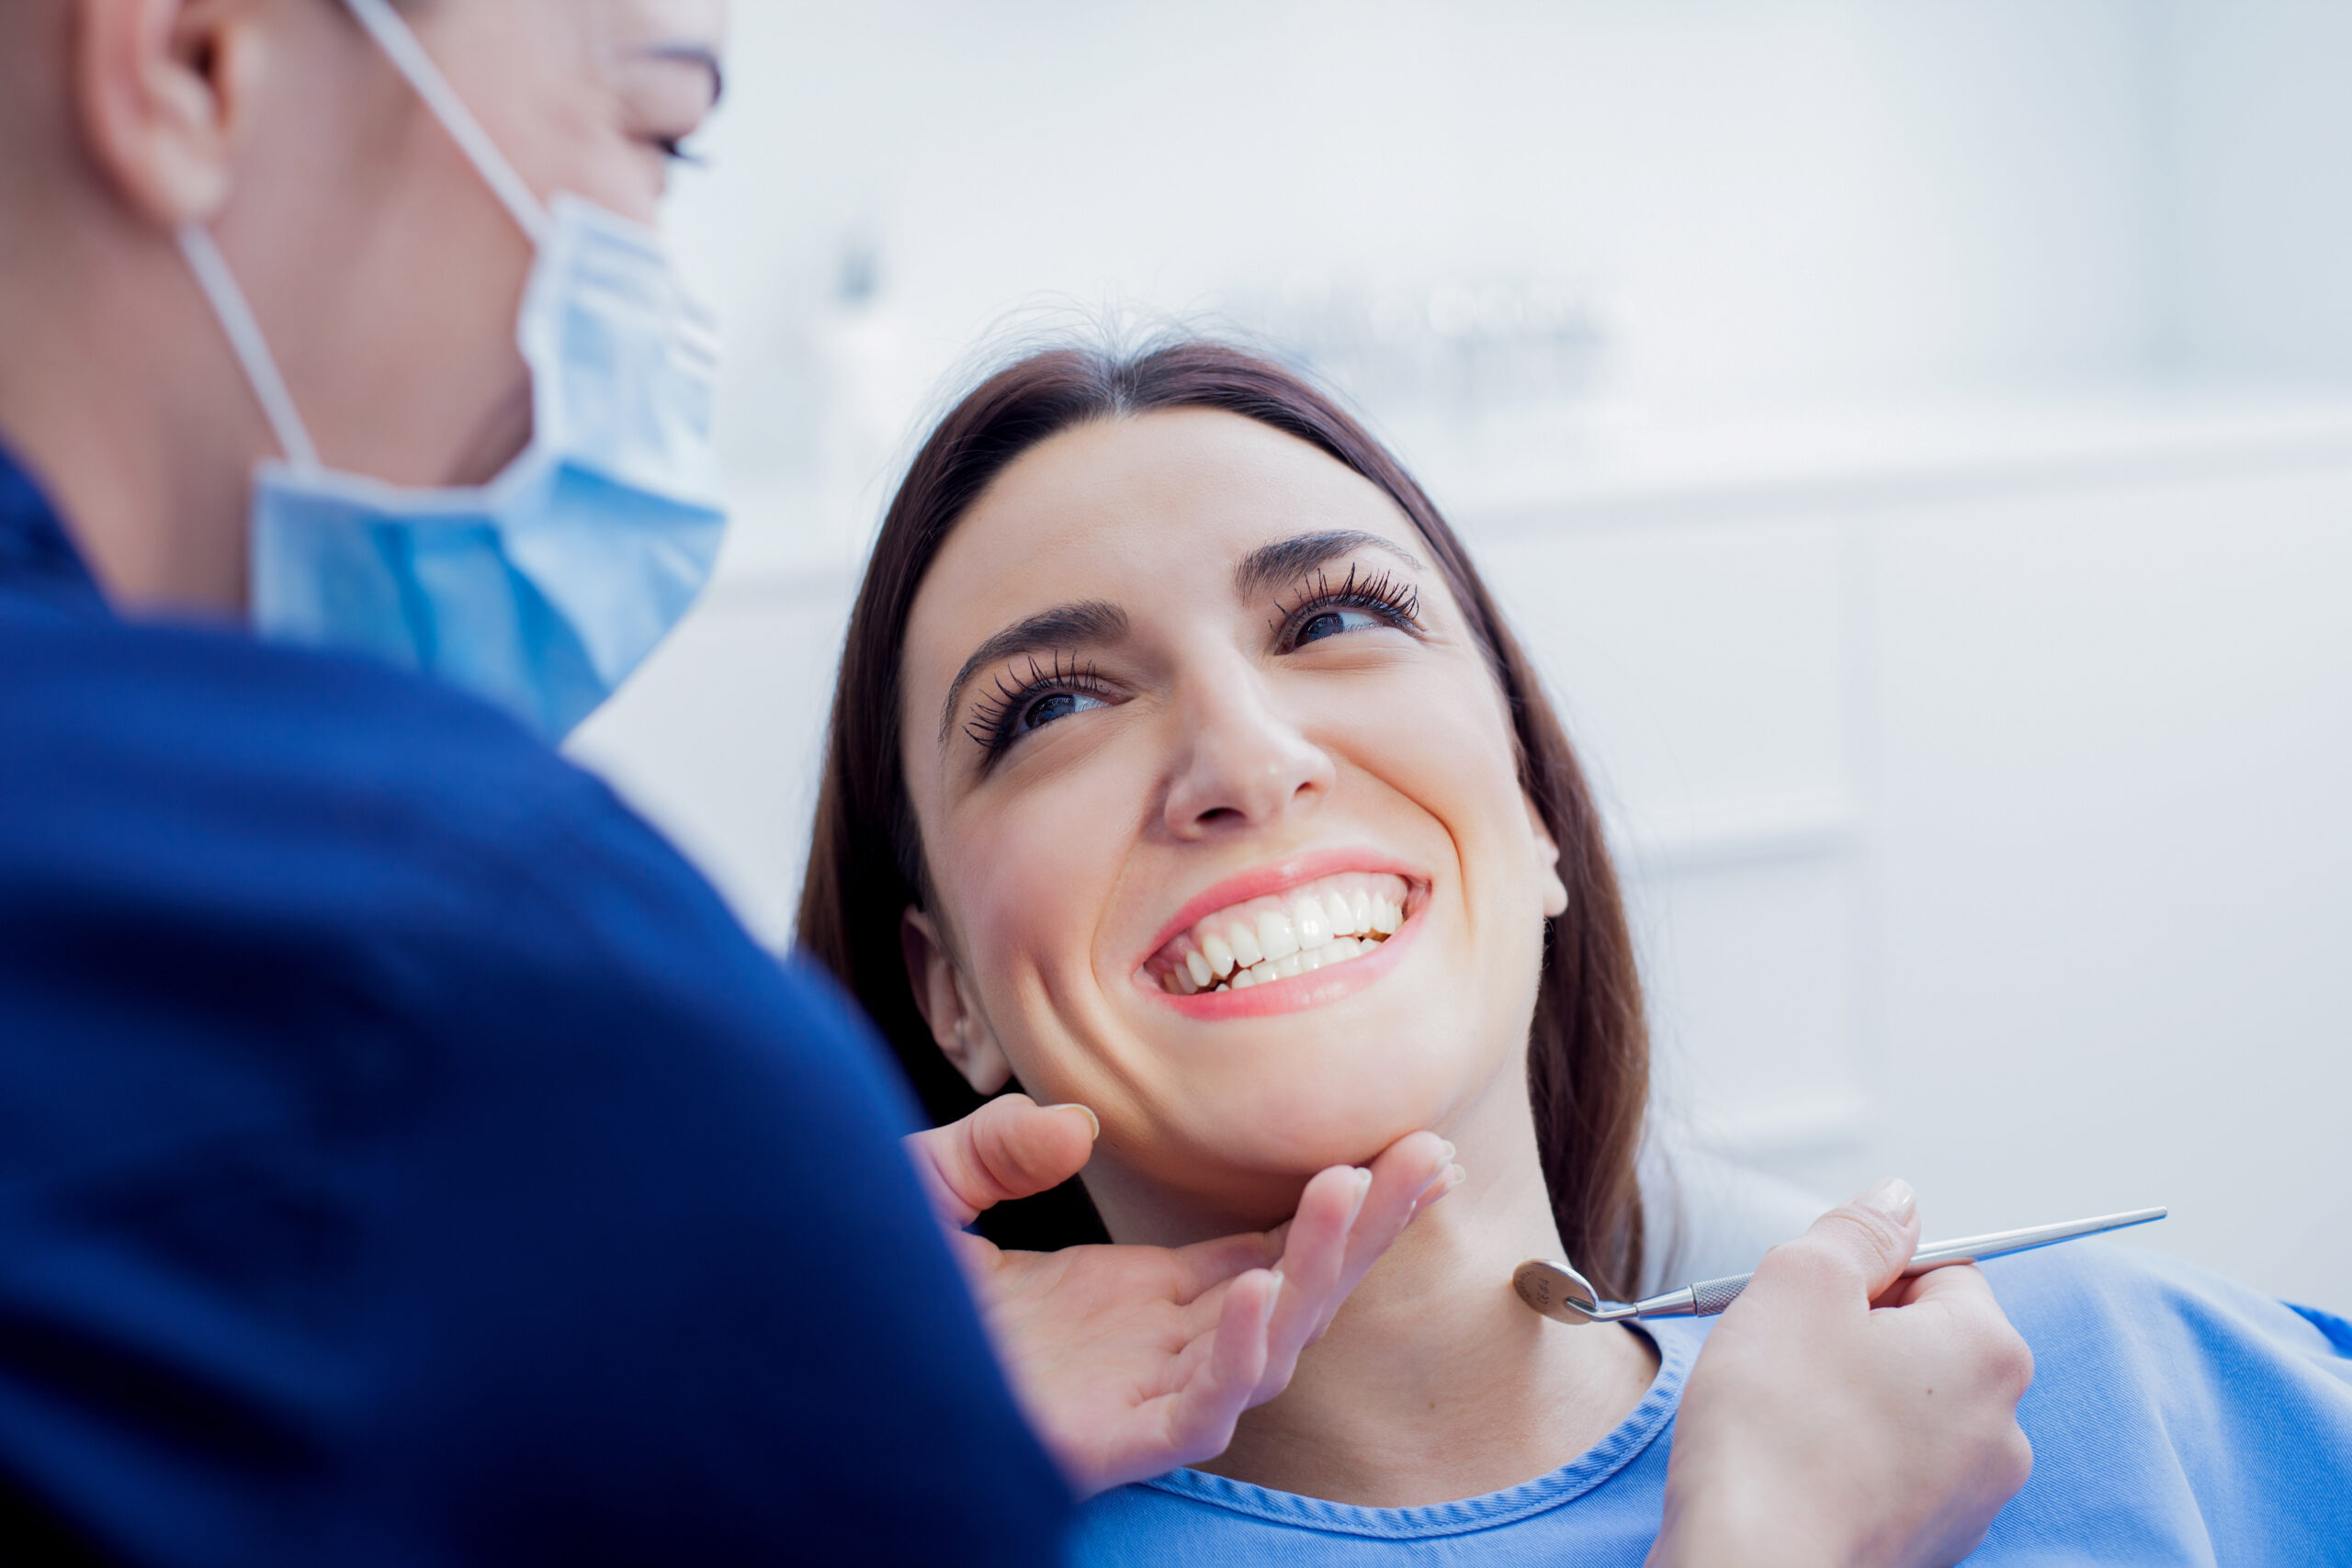 Dentist in Osmond | Do I Really Need an Exam?